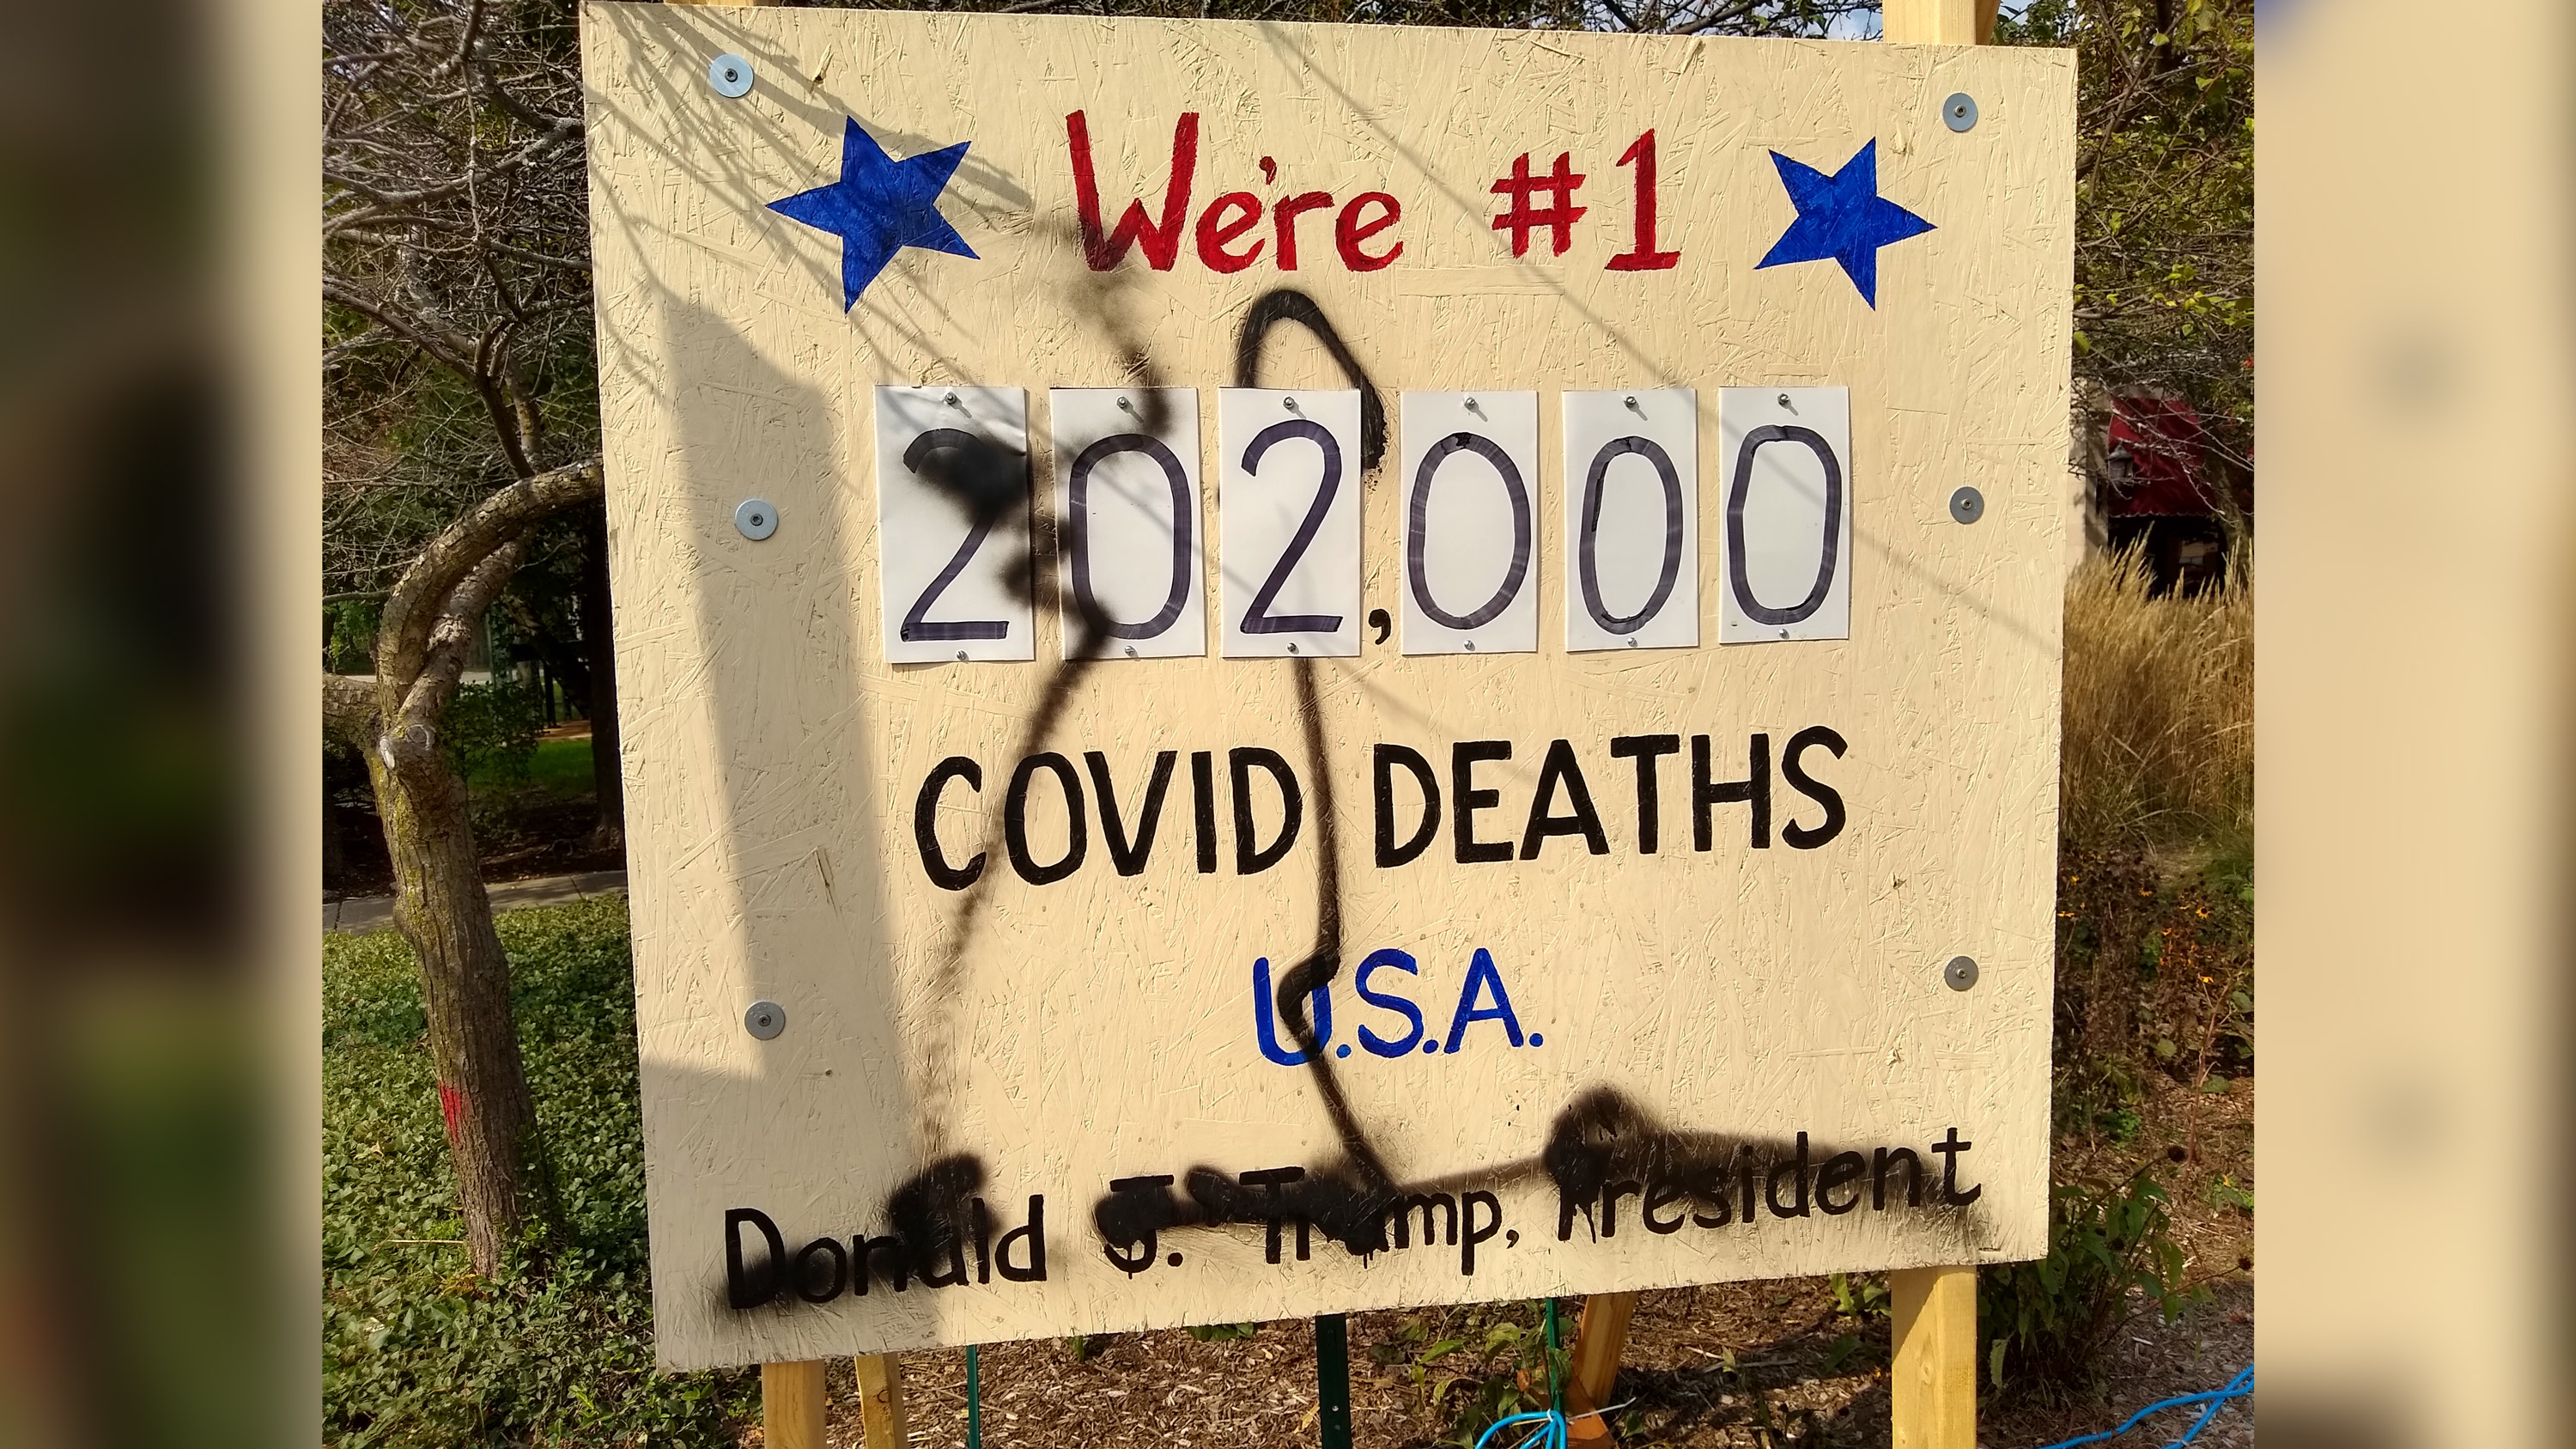 A sign reminding people of the 200,000 US Covid deaths vandalized five times in 6 days